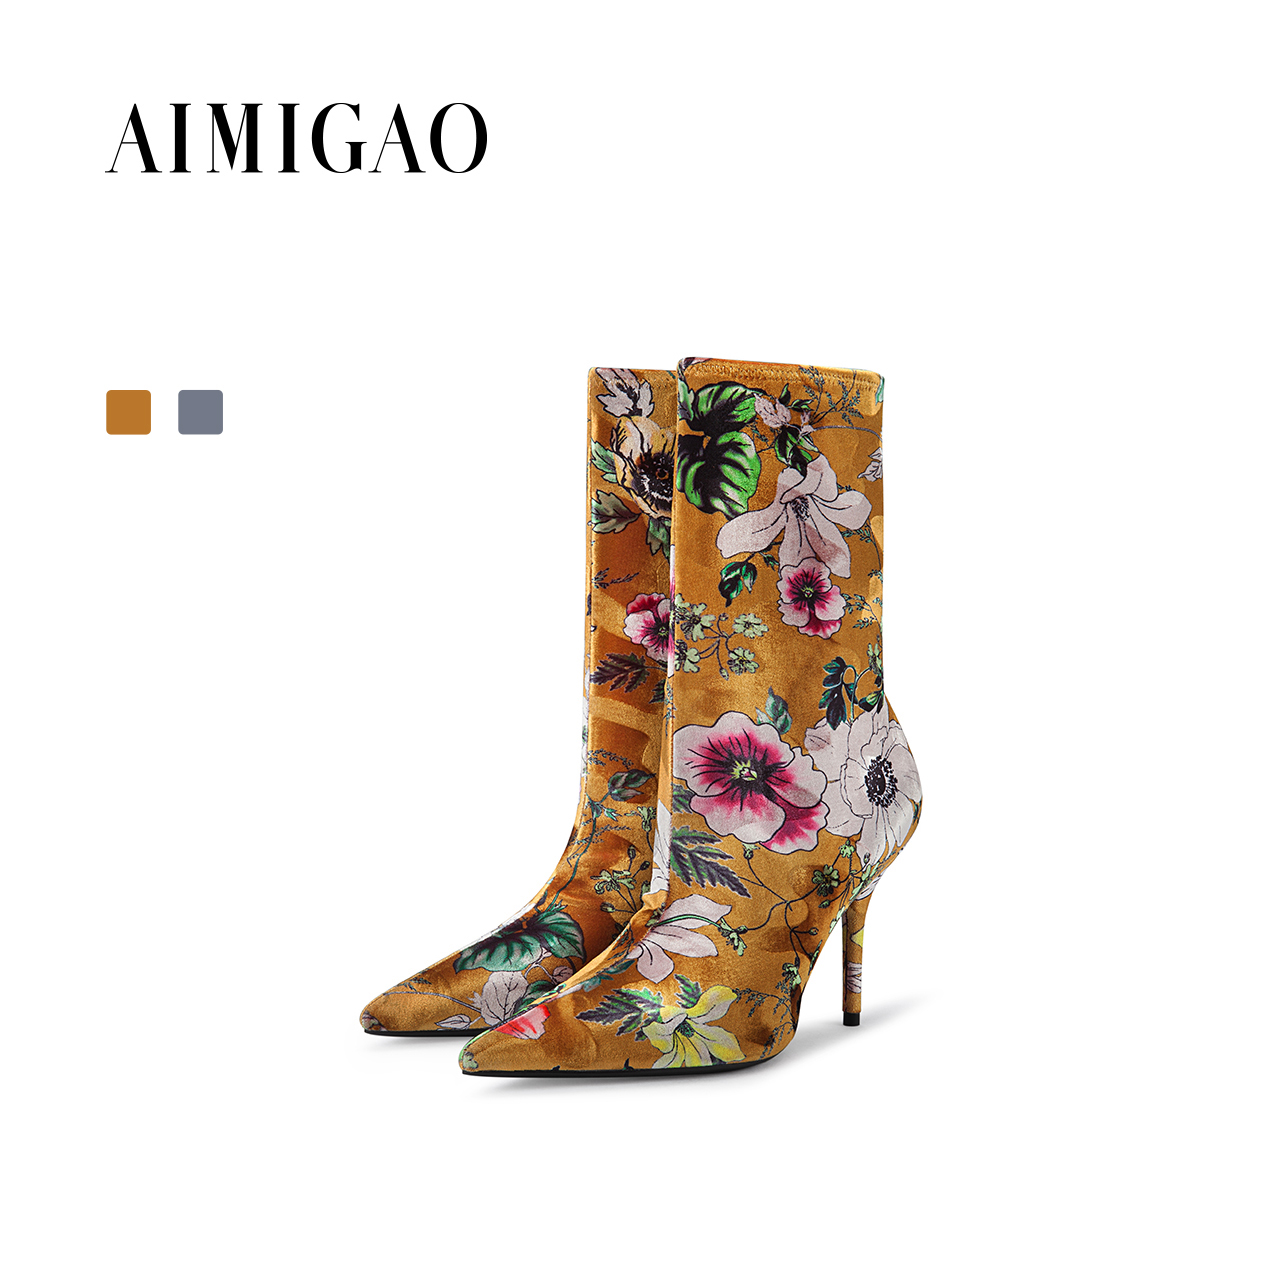 AIMIGAO fashion floral socks boots 2017 autumn winter new pointed toe sexy thin high heel women Mid-calf boots luxury new arrival superstar genuine leather chelsea boots women round toe solid thick heel runway model nude zipper mid calf boots l63